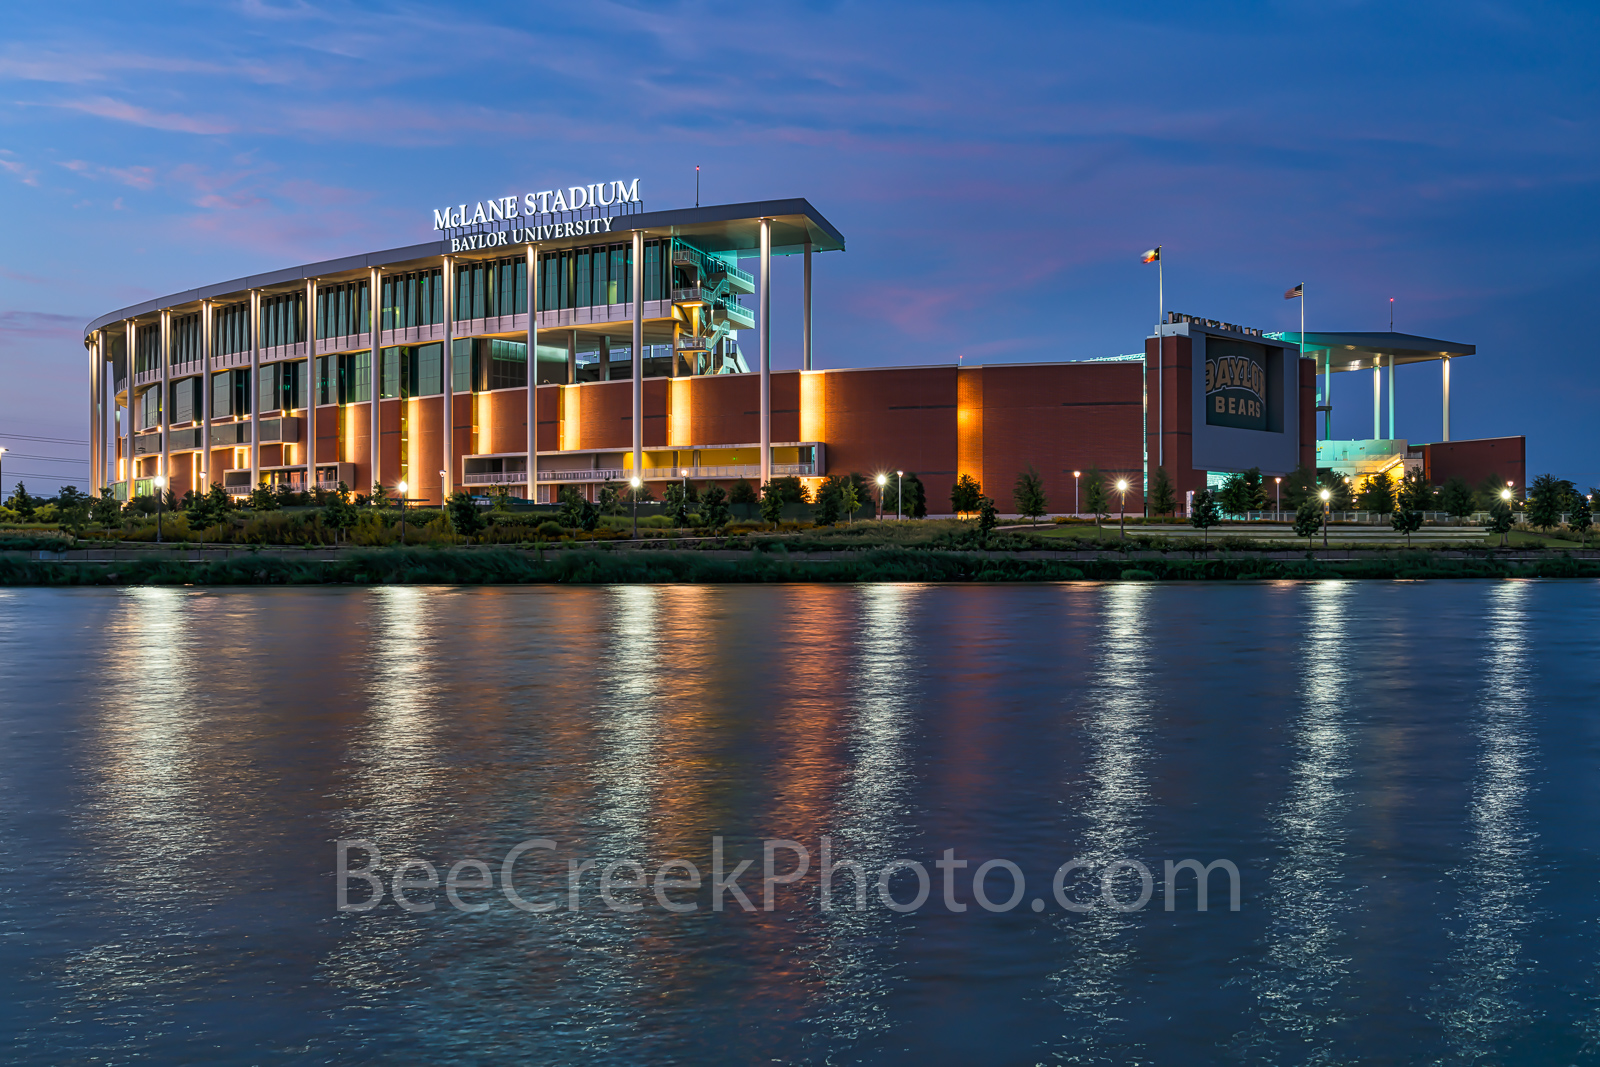 Waco, sunset, McLane Stadium, Baylor University, dusk, blue hour, Baylor Bears, stadium , University of Baylor, school, Brazos river,, photo